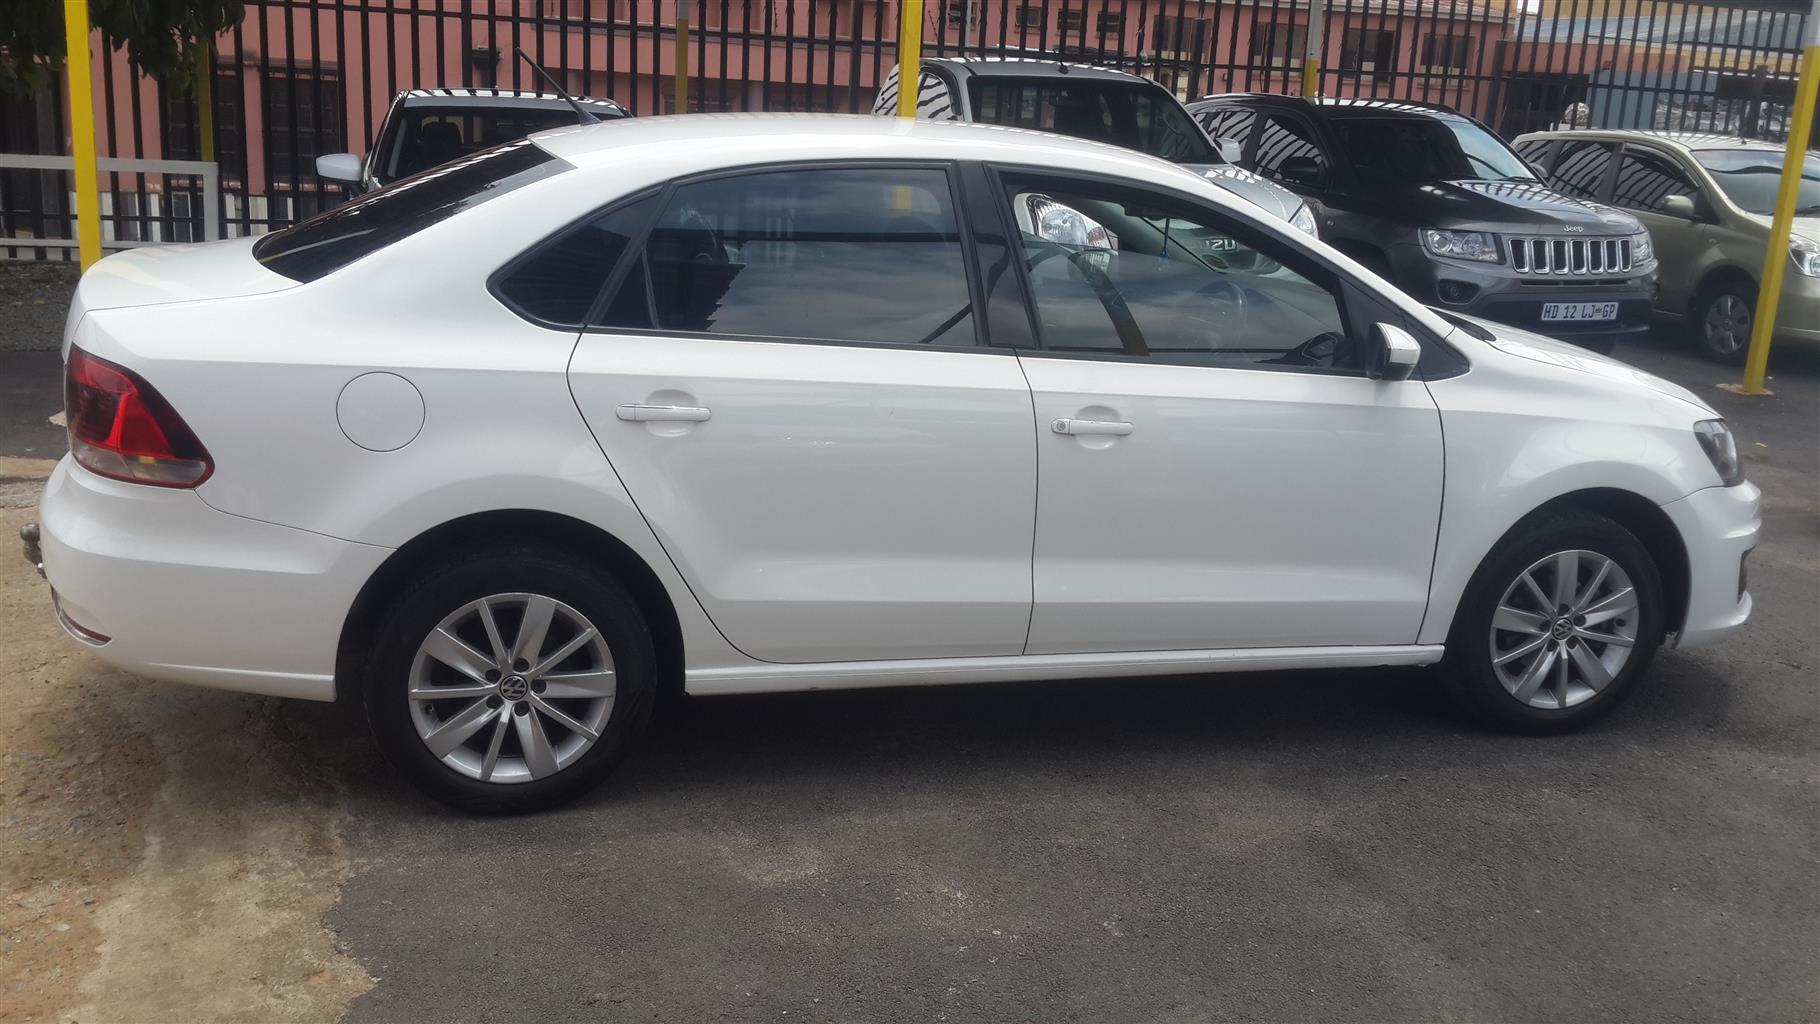 2016 VW Polo sedan 1.4 Comfortline | Junk Mail